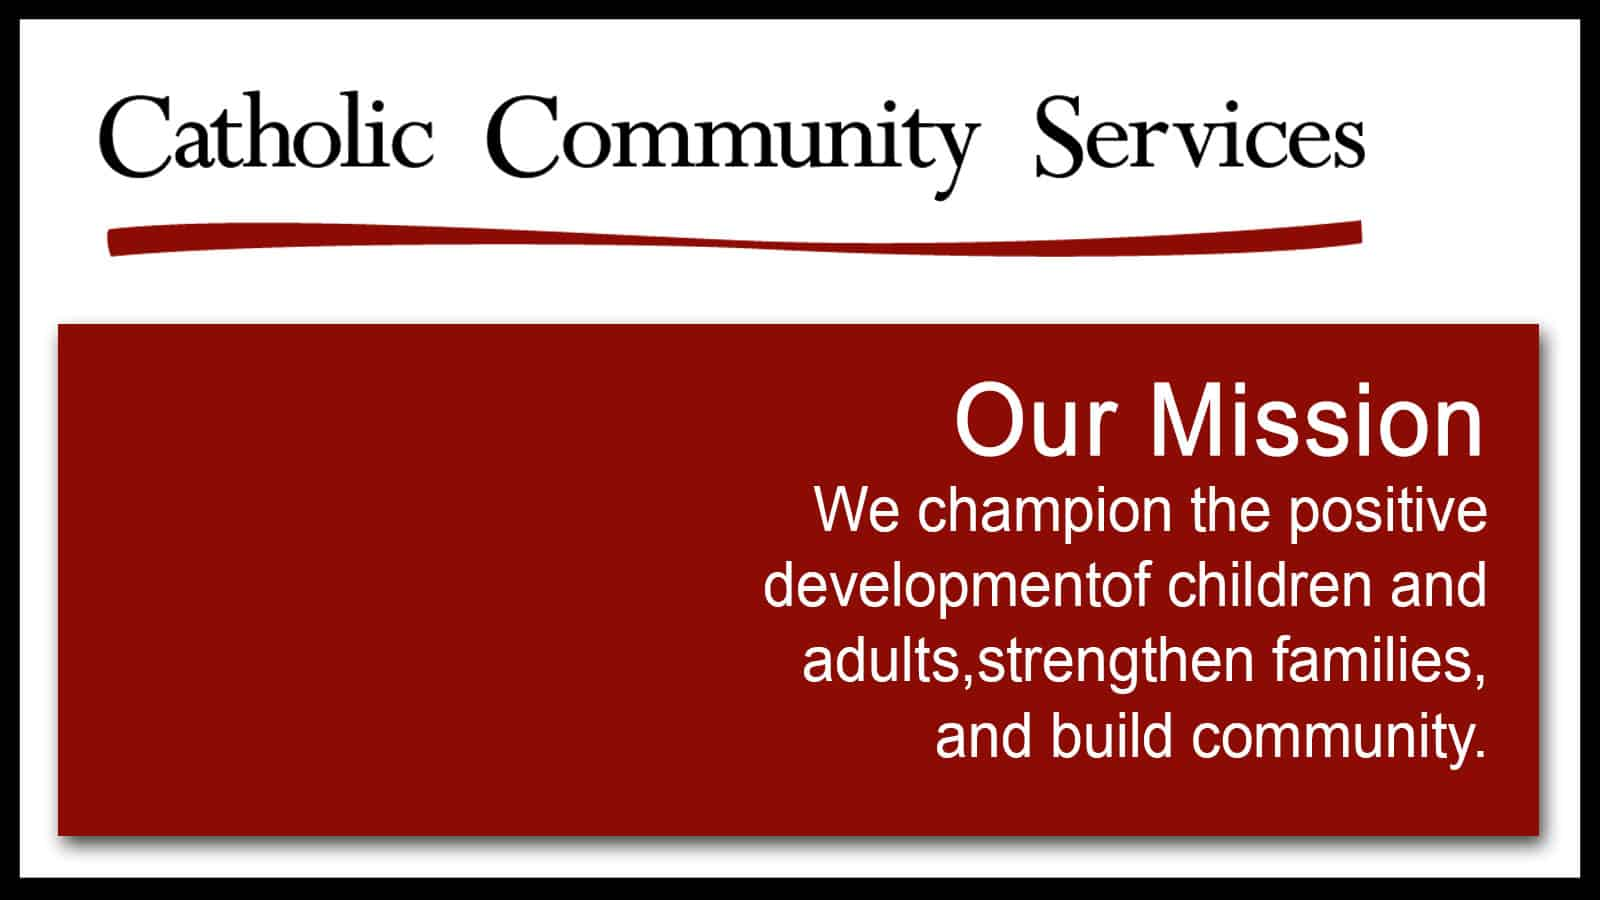 3Rs Construction supports Catholic Community Services